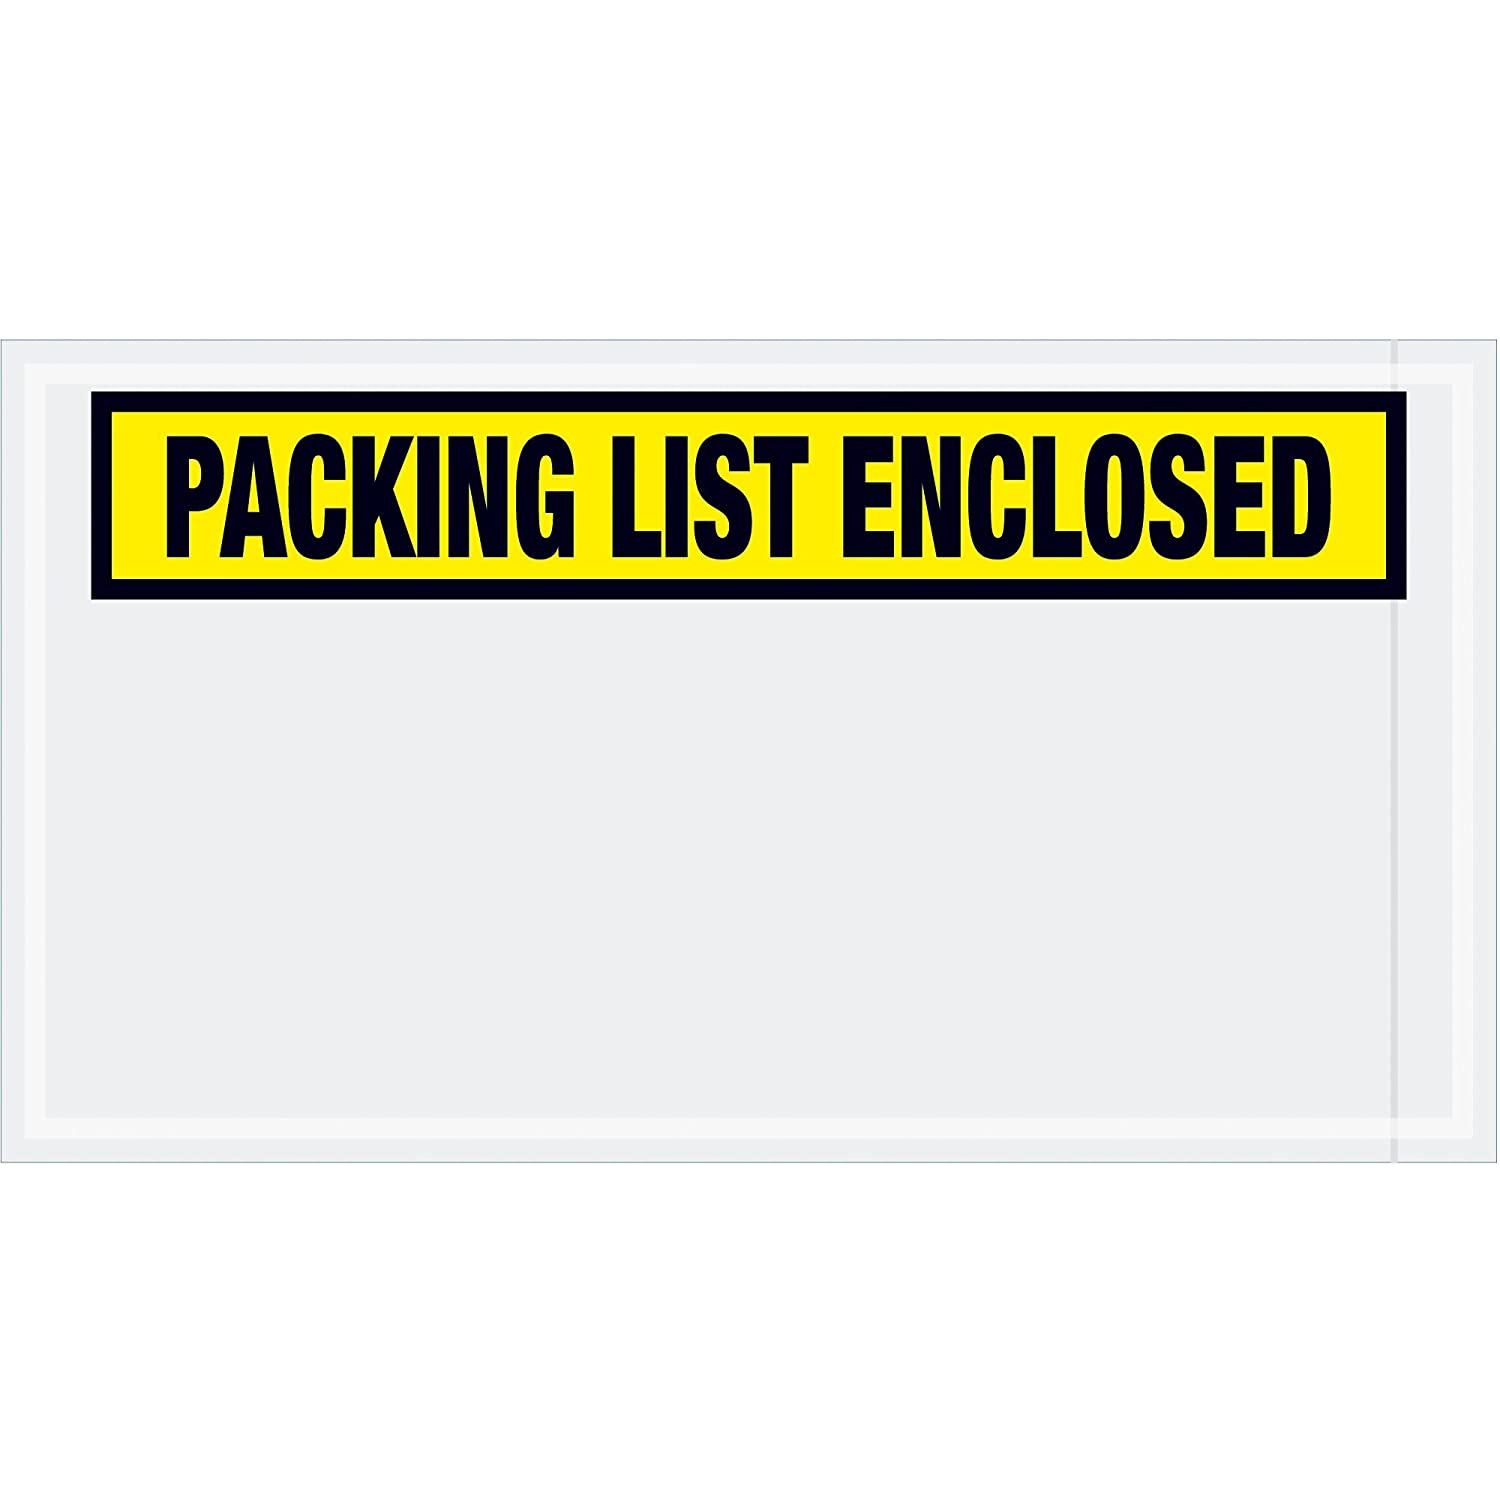 Pack of 1000 Orange 5 1//2 x 10 Top Pack Supply Tape LogicPacking List Enclosed Envelopes